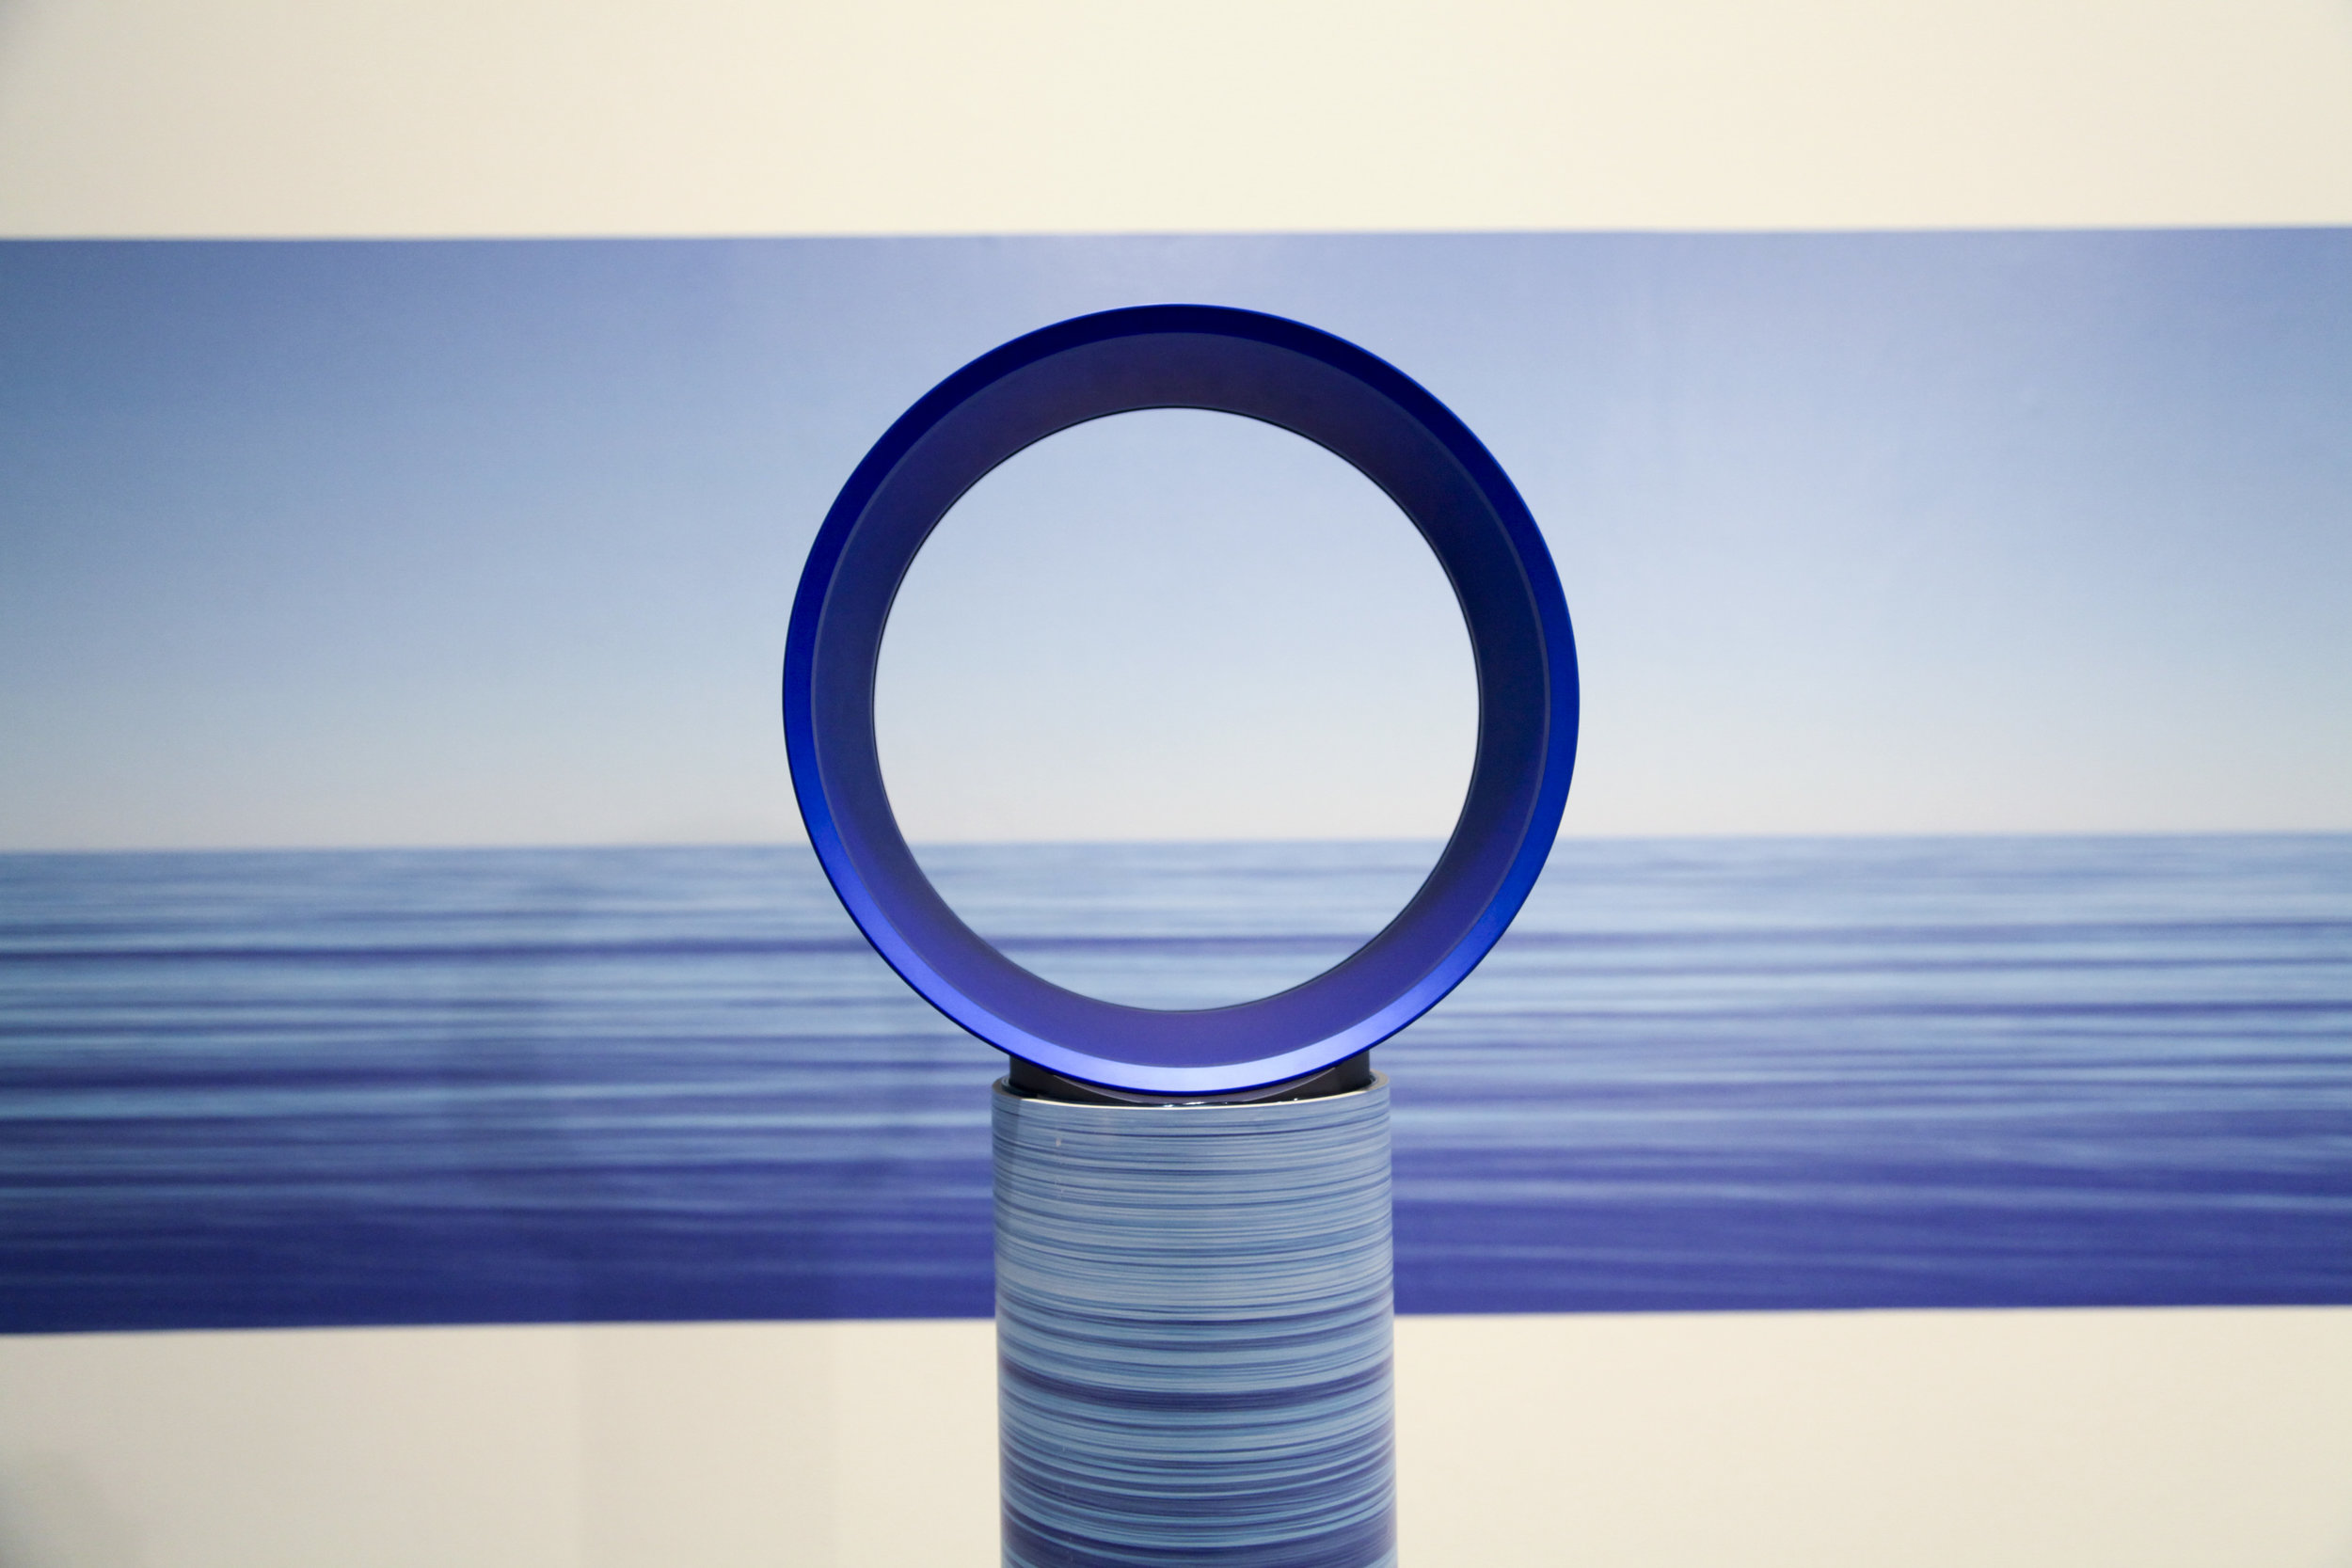 Earth, Water, Air  (foreground) and Horizon  (background), 2013, tabloid magazines (artist's personal collection), PVC pip, printed adhesive vinyl, Dyson Air Multiplier,installation view, MOP Projects, Sydney. Photography: Michael Randall. Copyright JD Reforma